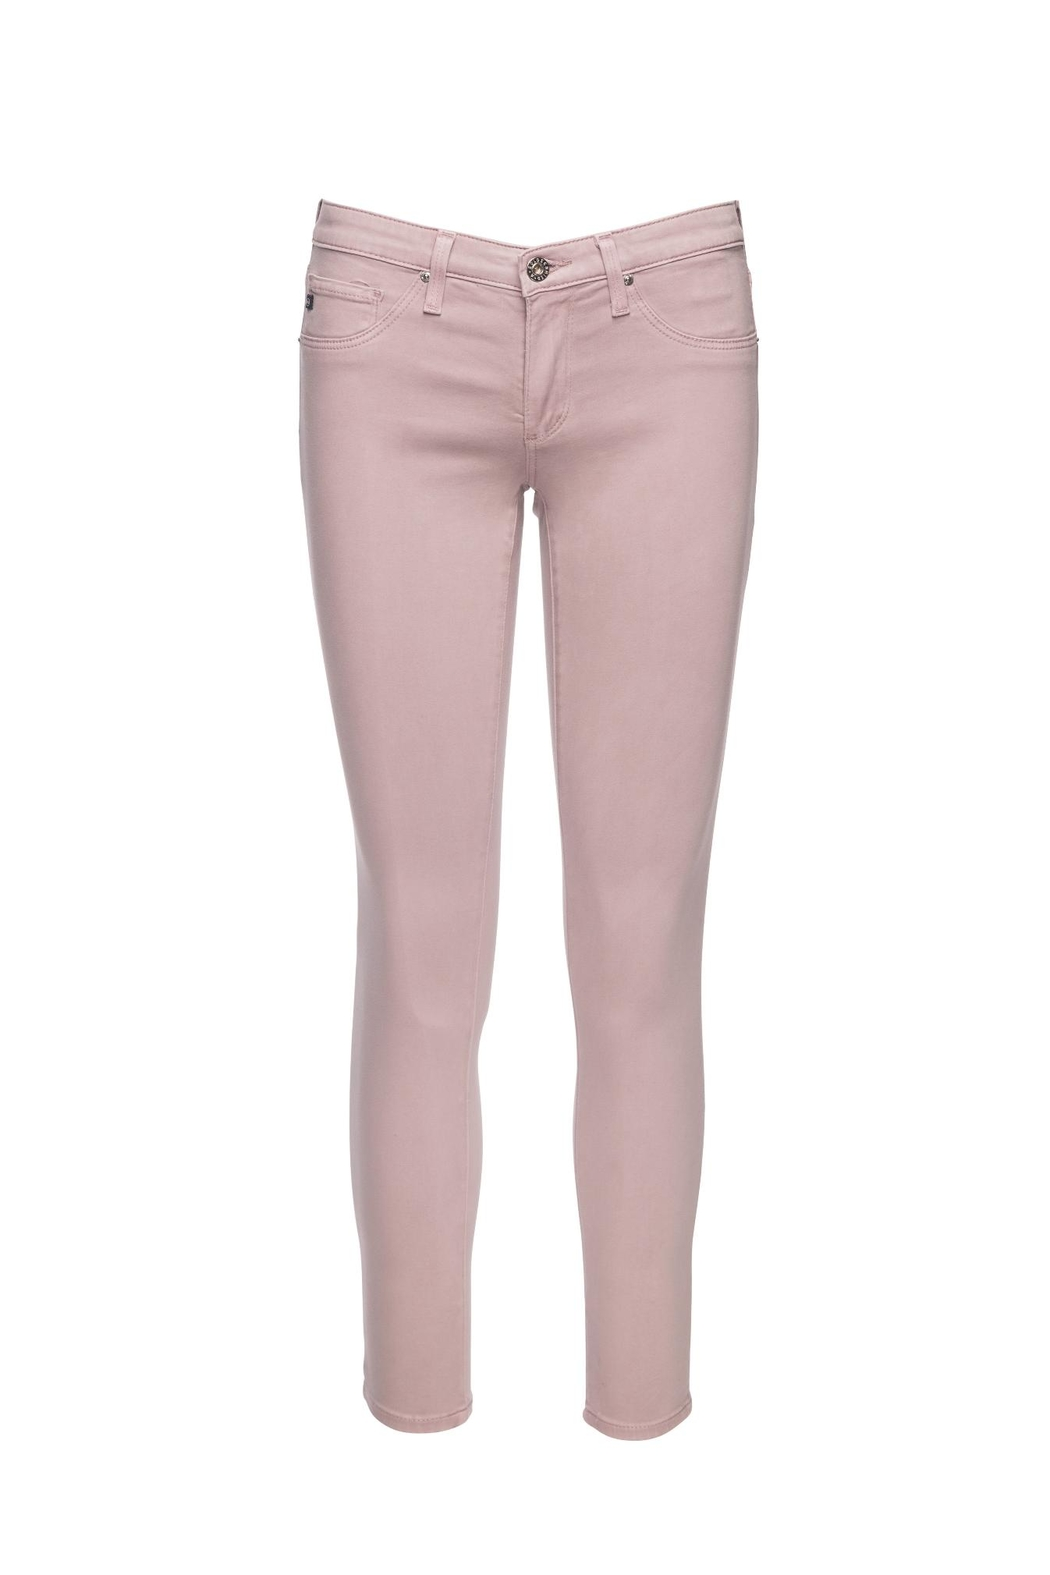 AG Jeans Sateen Legging Ankle Jeans - Main Image